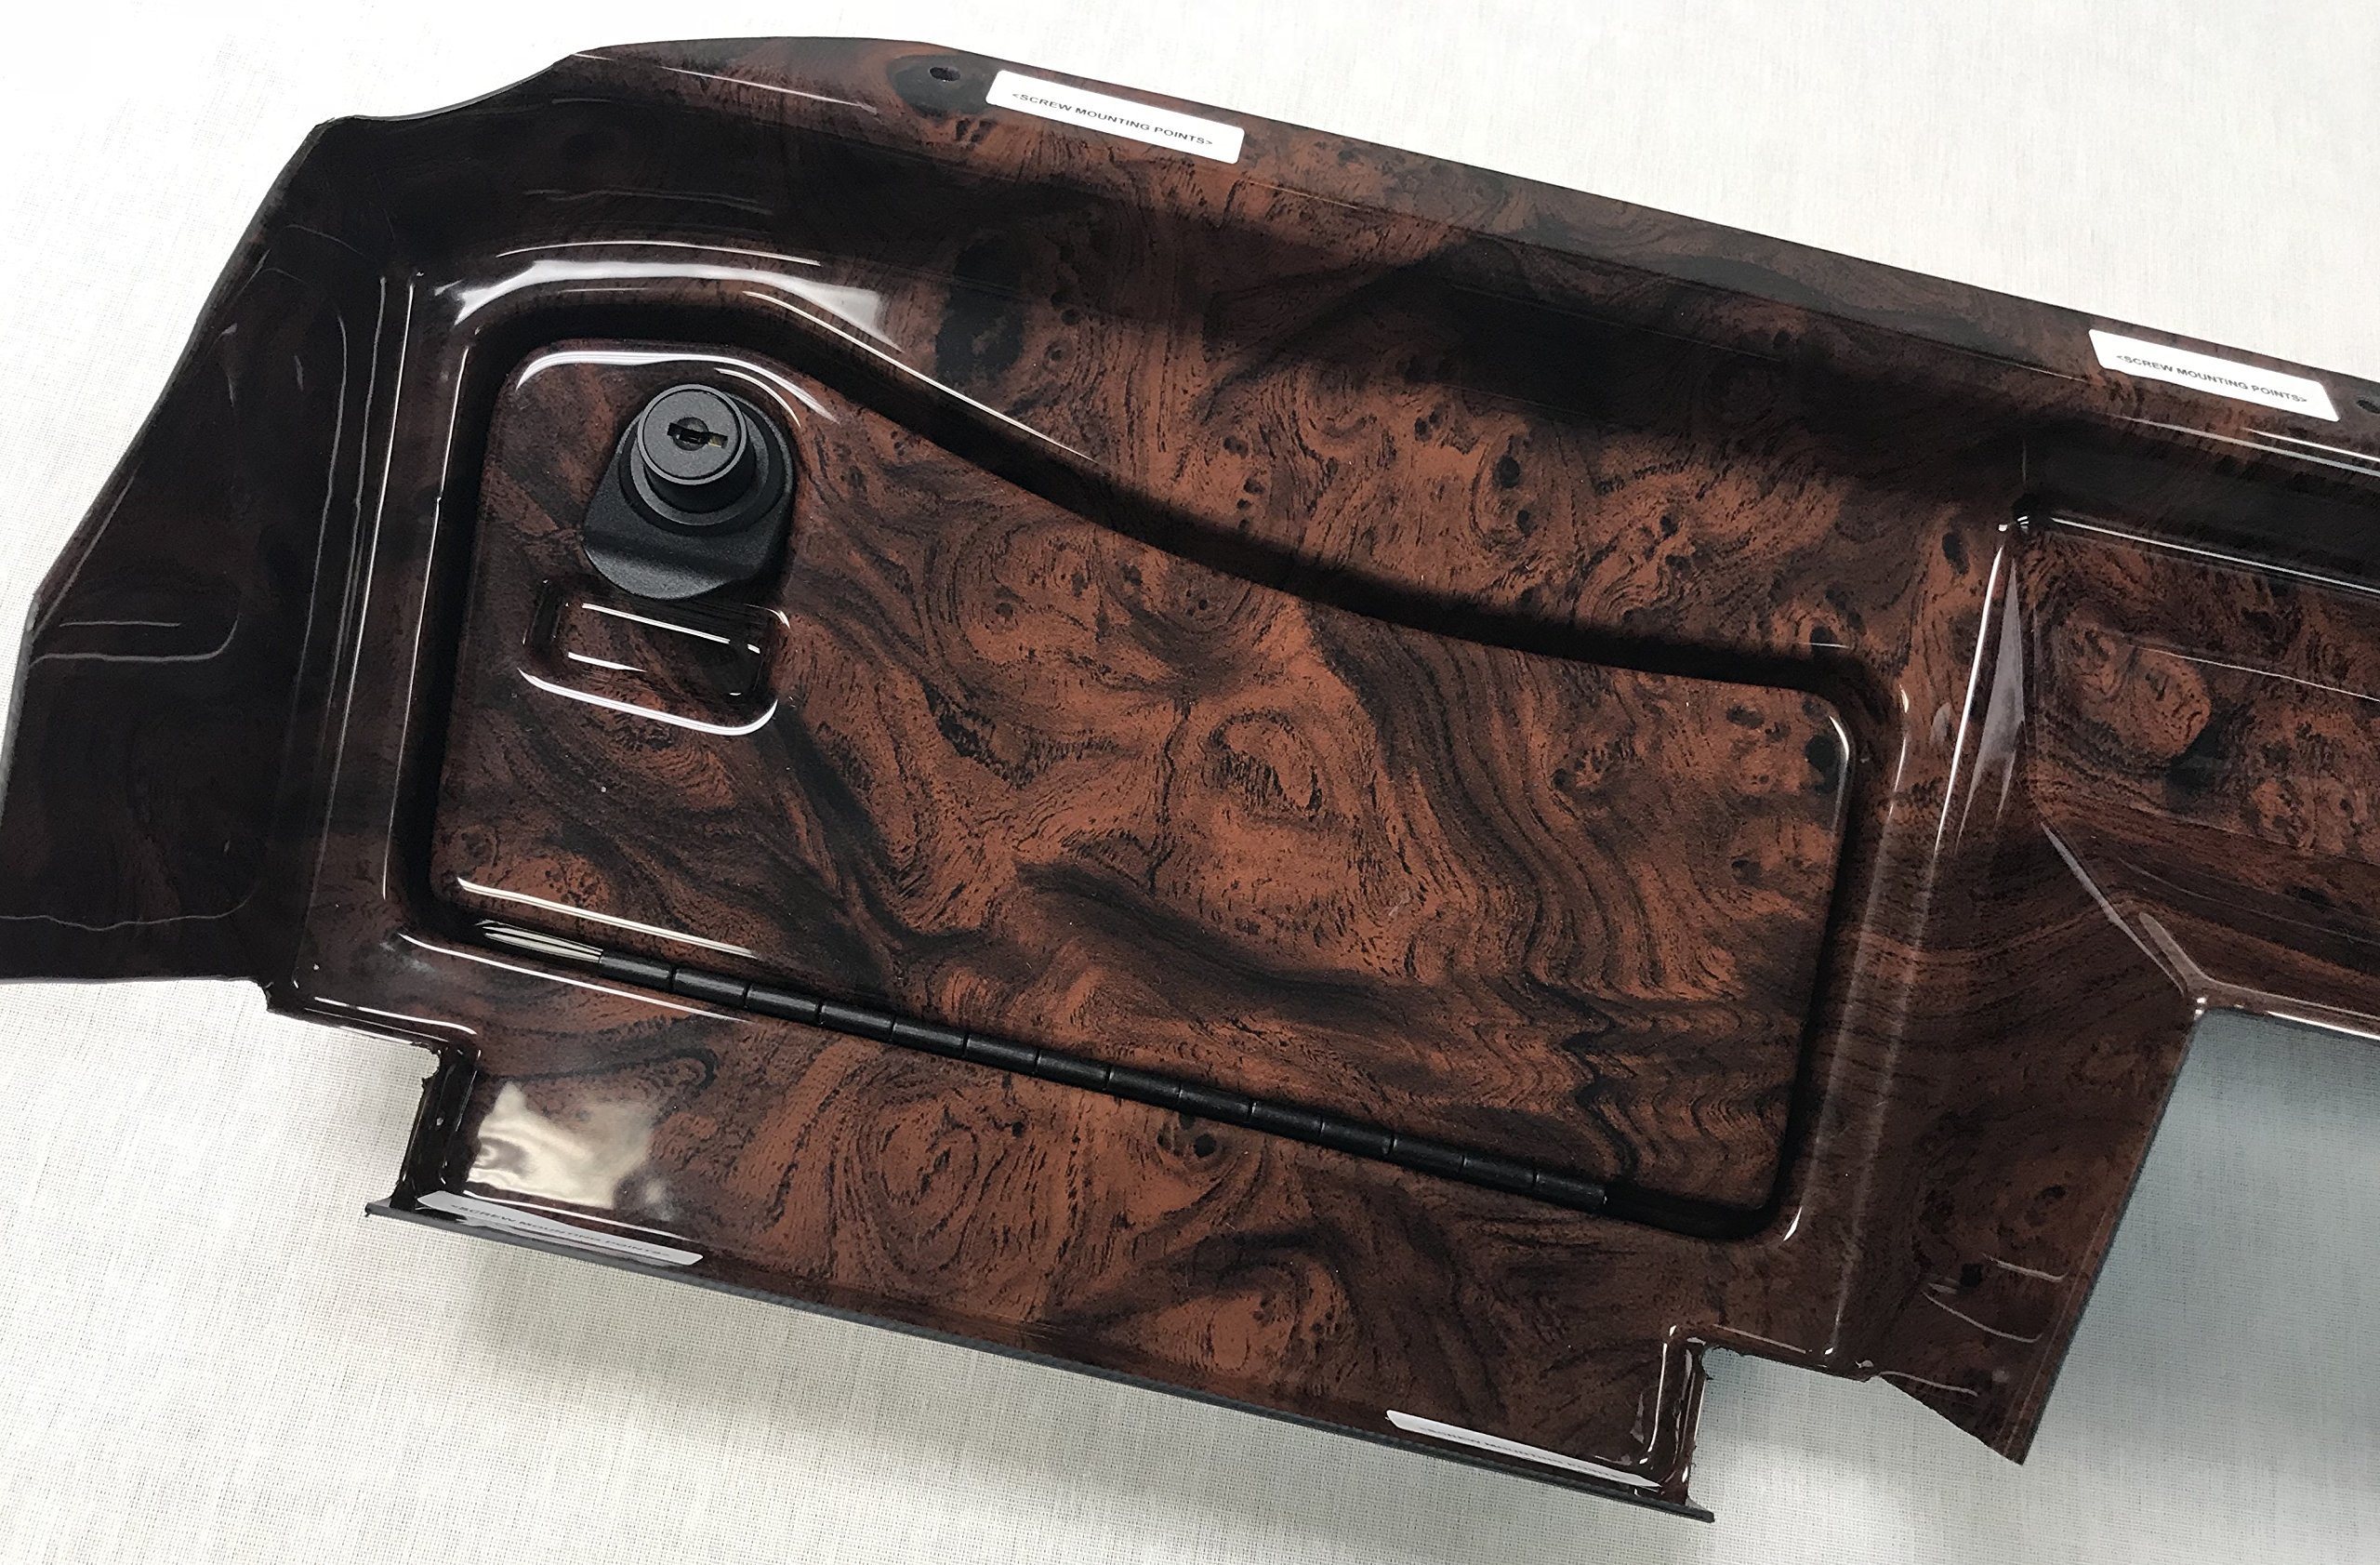 Simulated Dark Burled Woodgrain Full Golf Cart Dash to fit E-Z-Go RXV 1st Generation Cart (Will NOT FIT New 2ND Generation CART) Includes 3 Hole Gauge Trim Plate